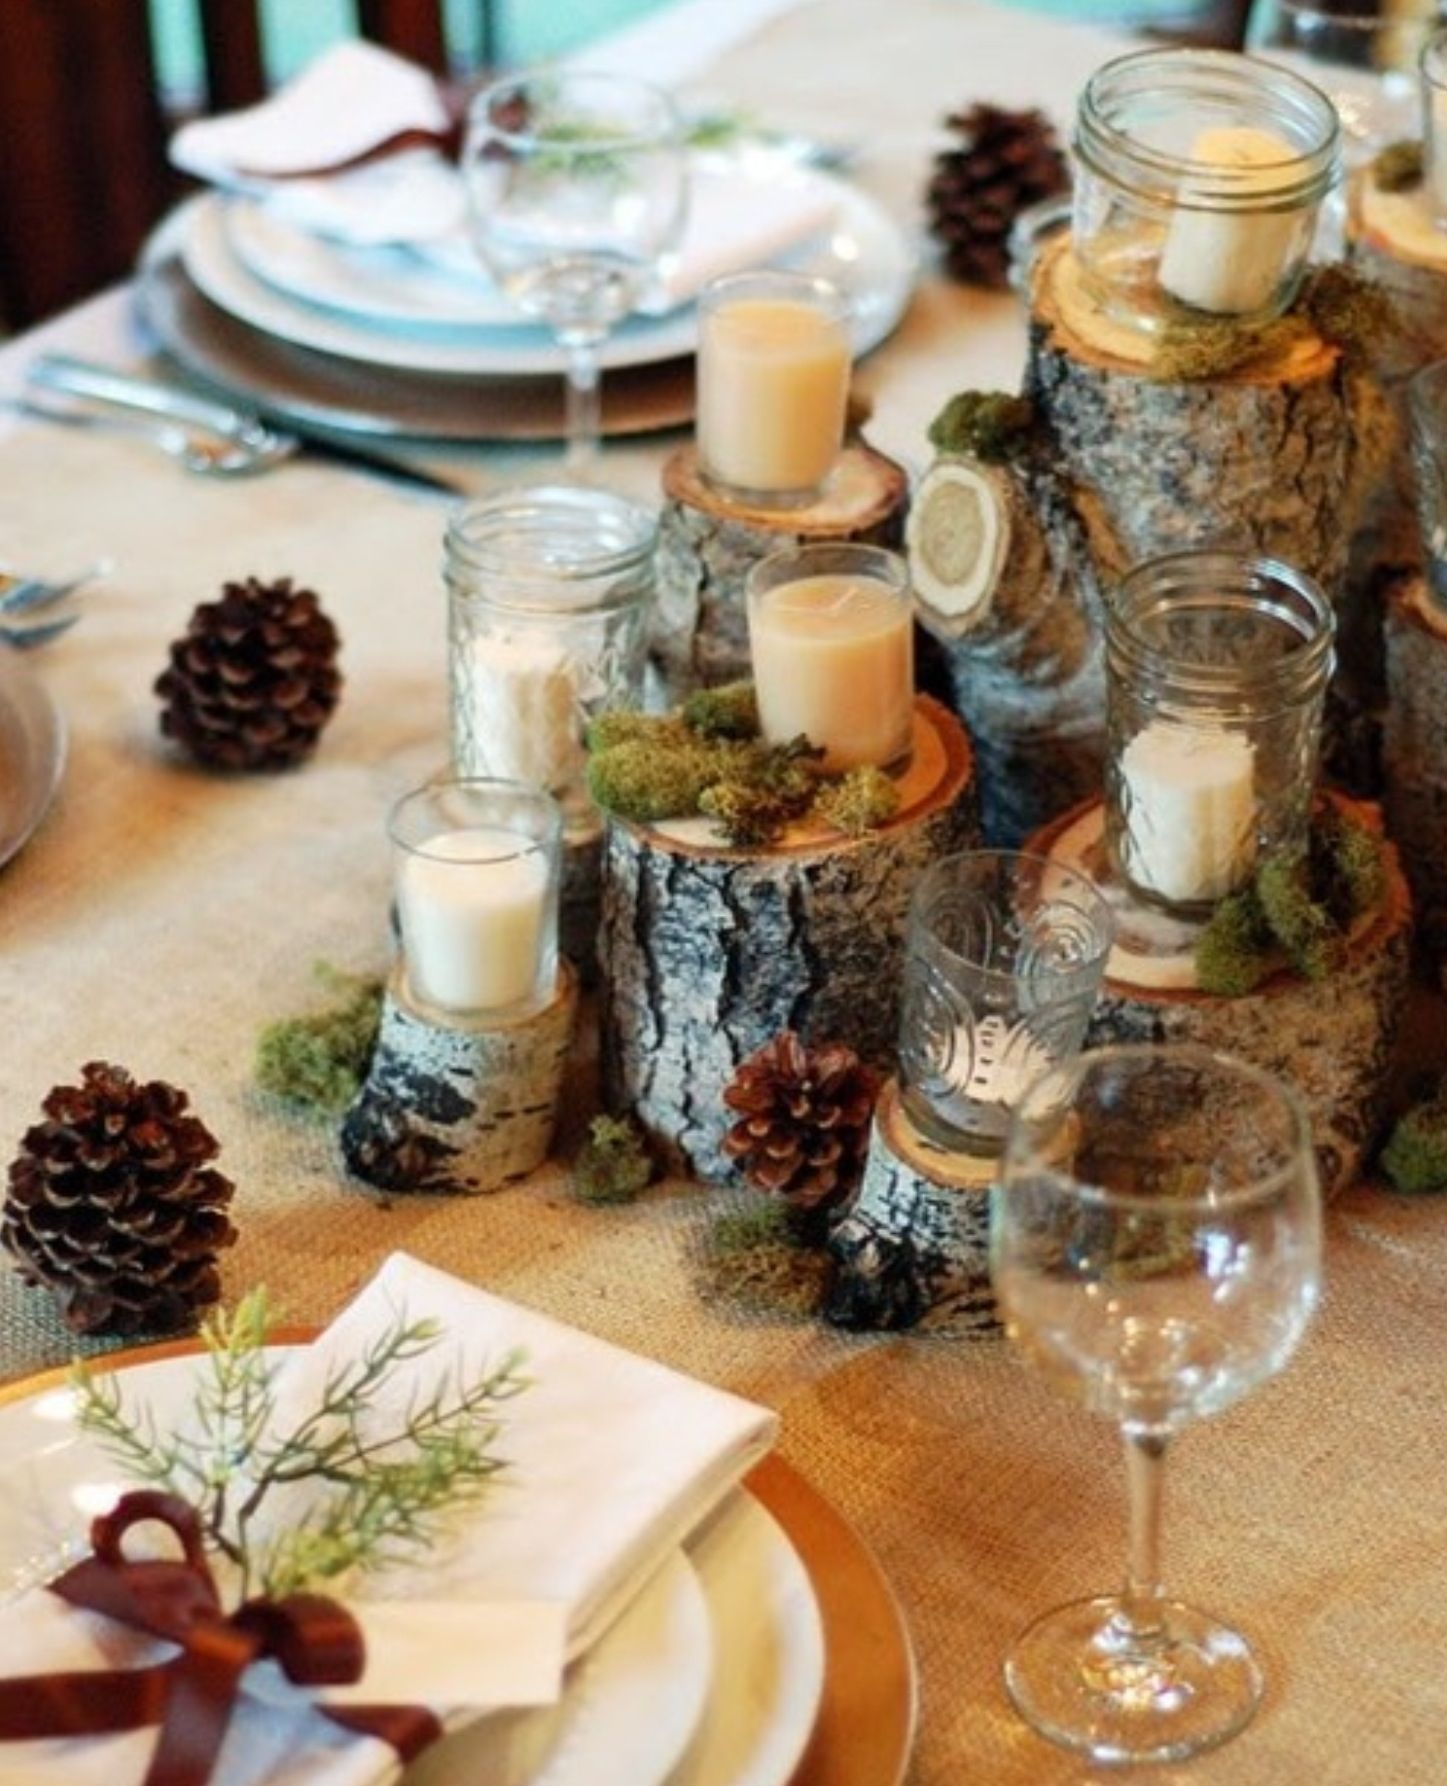 Pine Cone Wedding Table Decorations Rustic Wedding Table Decor Wedding Ideas Pinterest Wedding